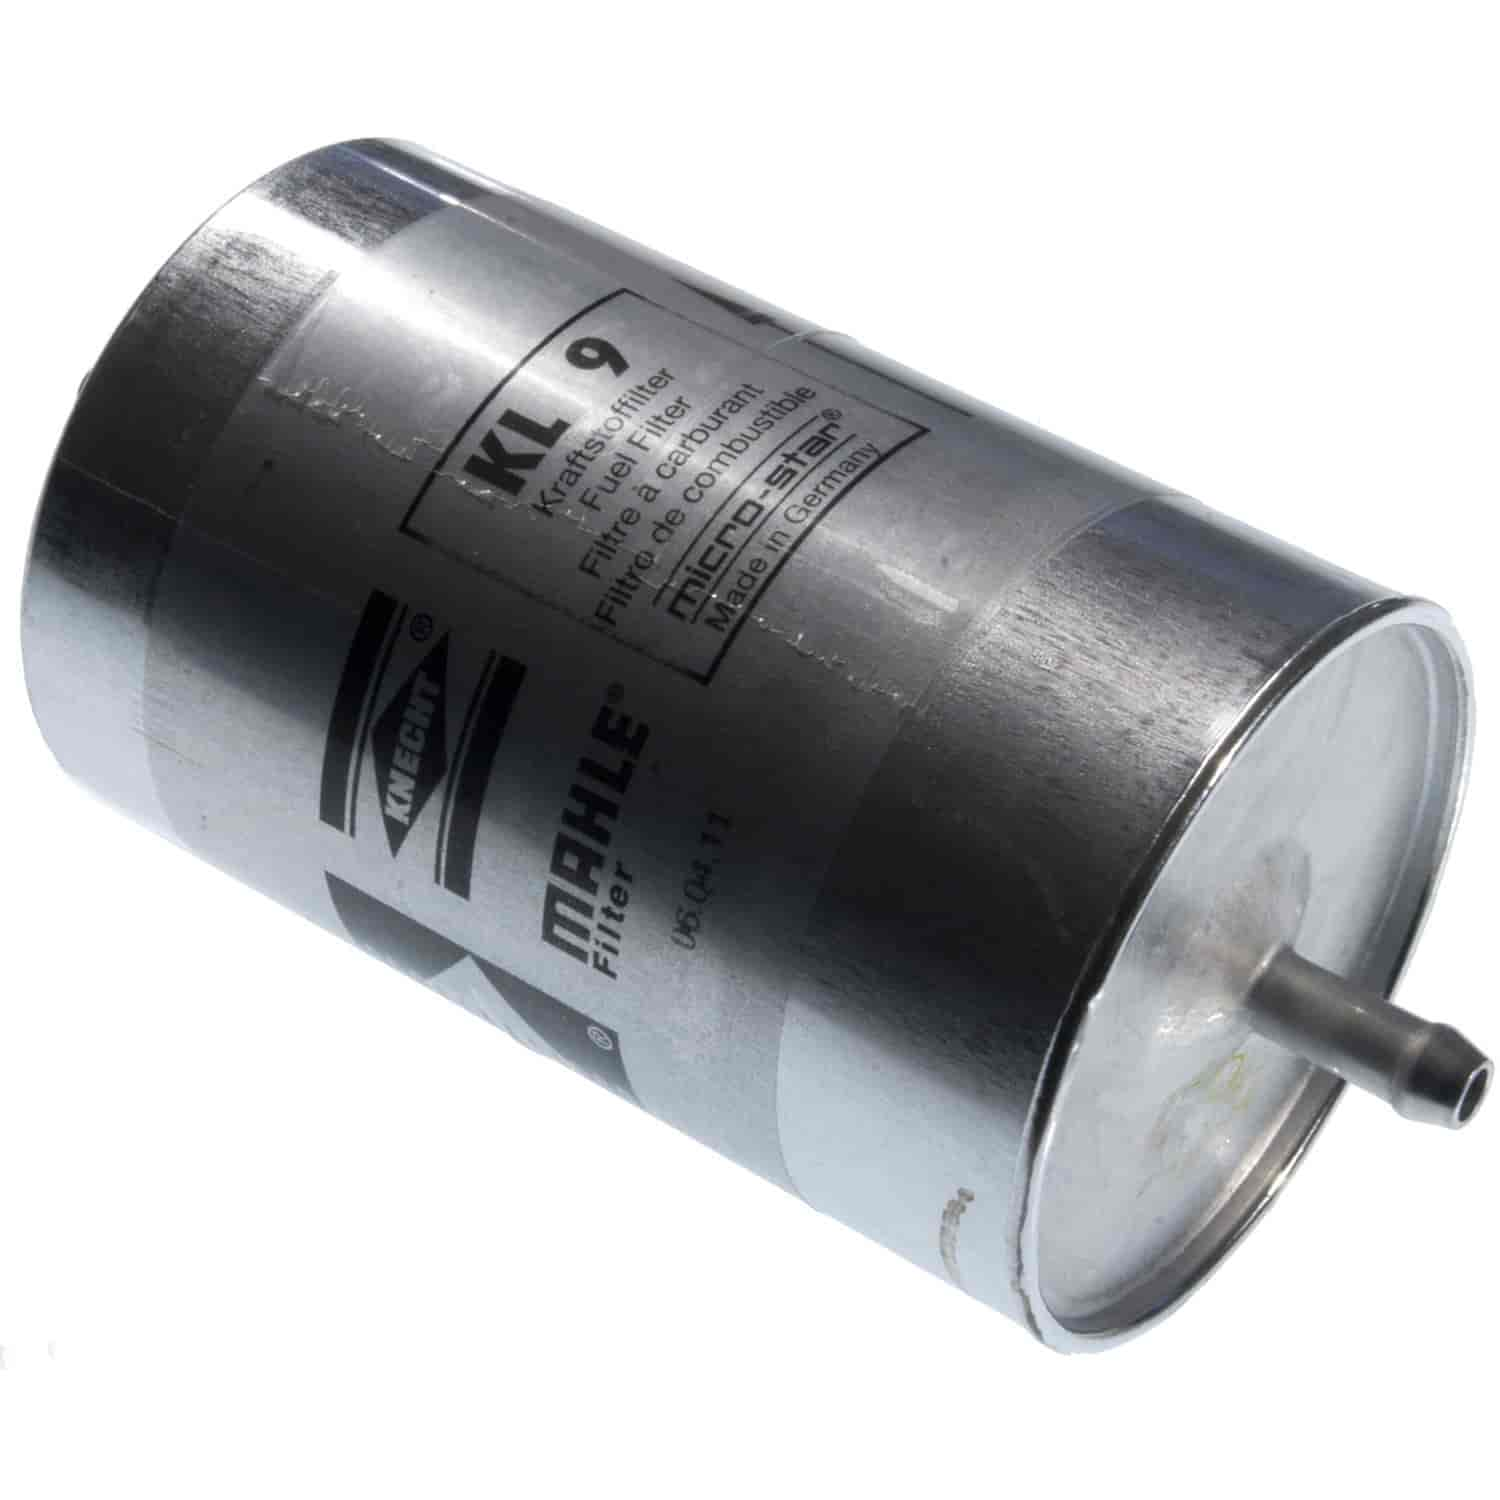 Clevite Mahle Kl9 Fuel Filter Bmw 318i 325 1984 1987 Jegs Mustang Location